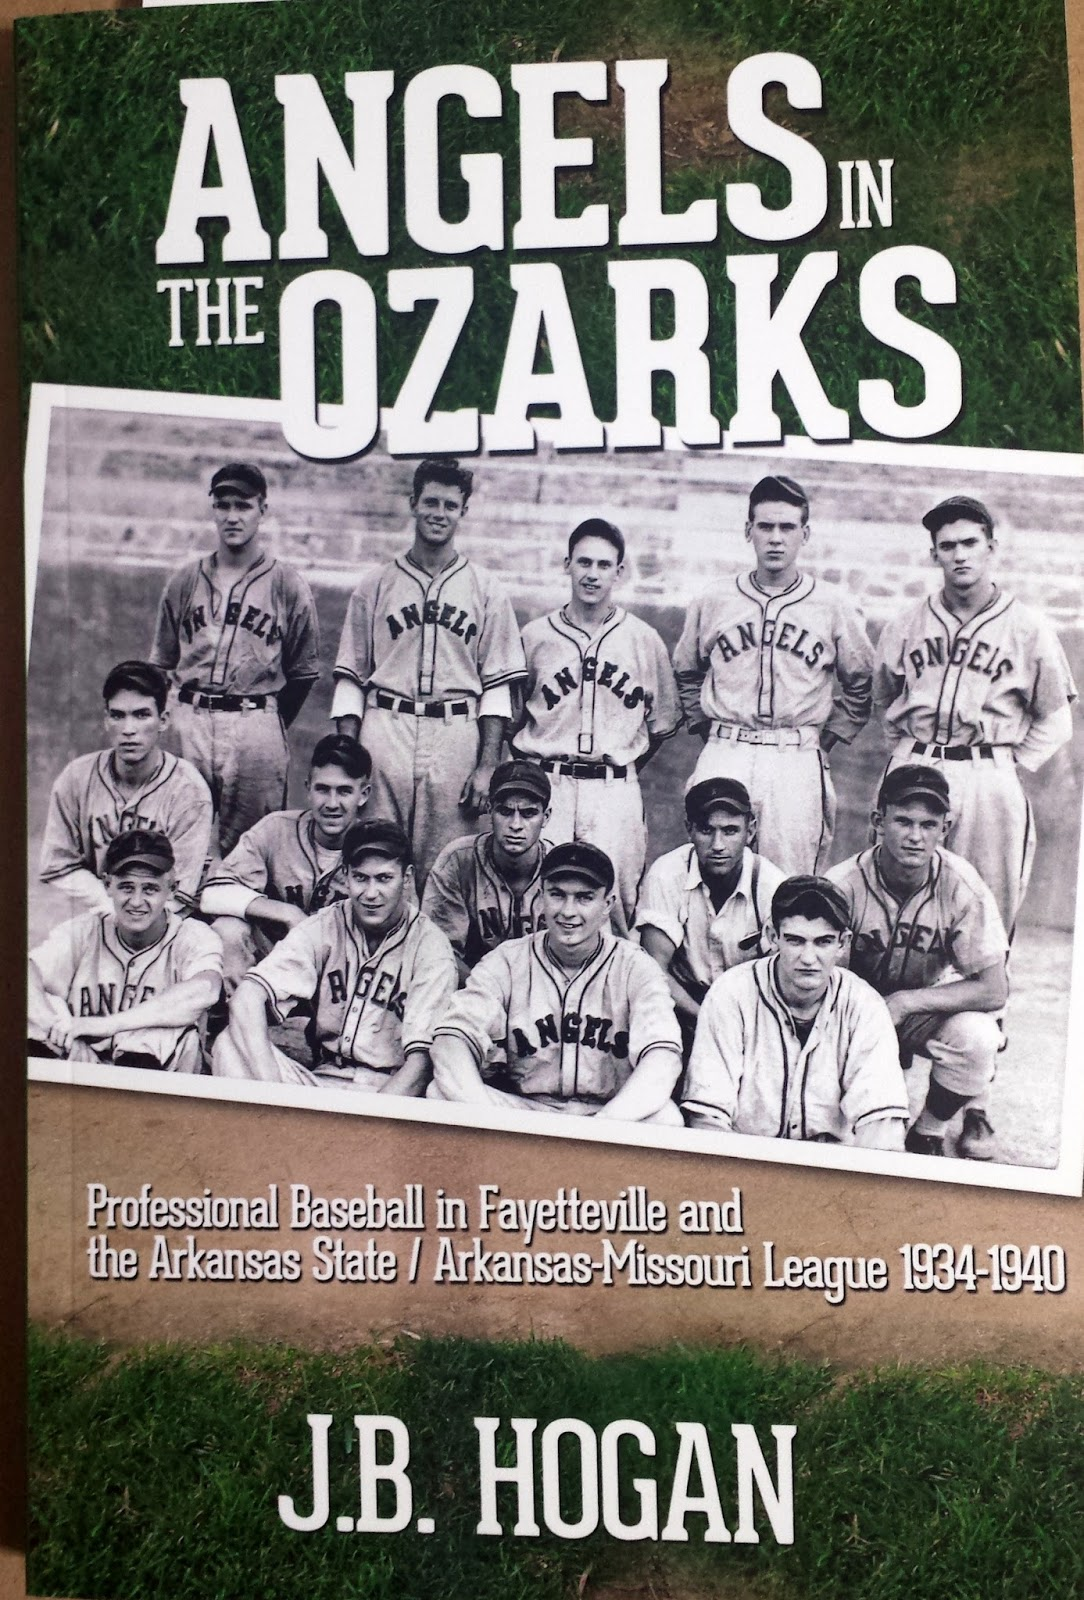 Have you read baseball books off the beaten path of the mainstream target audience?